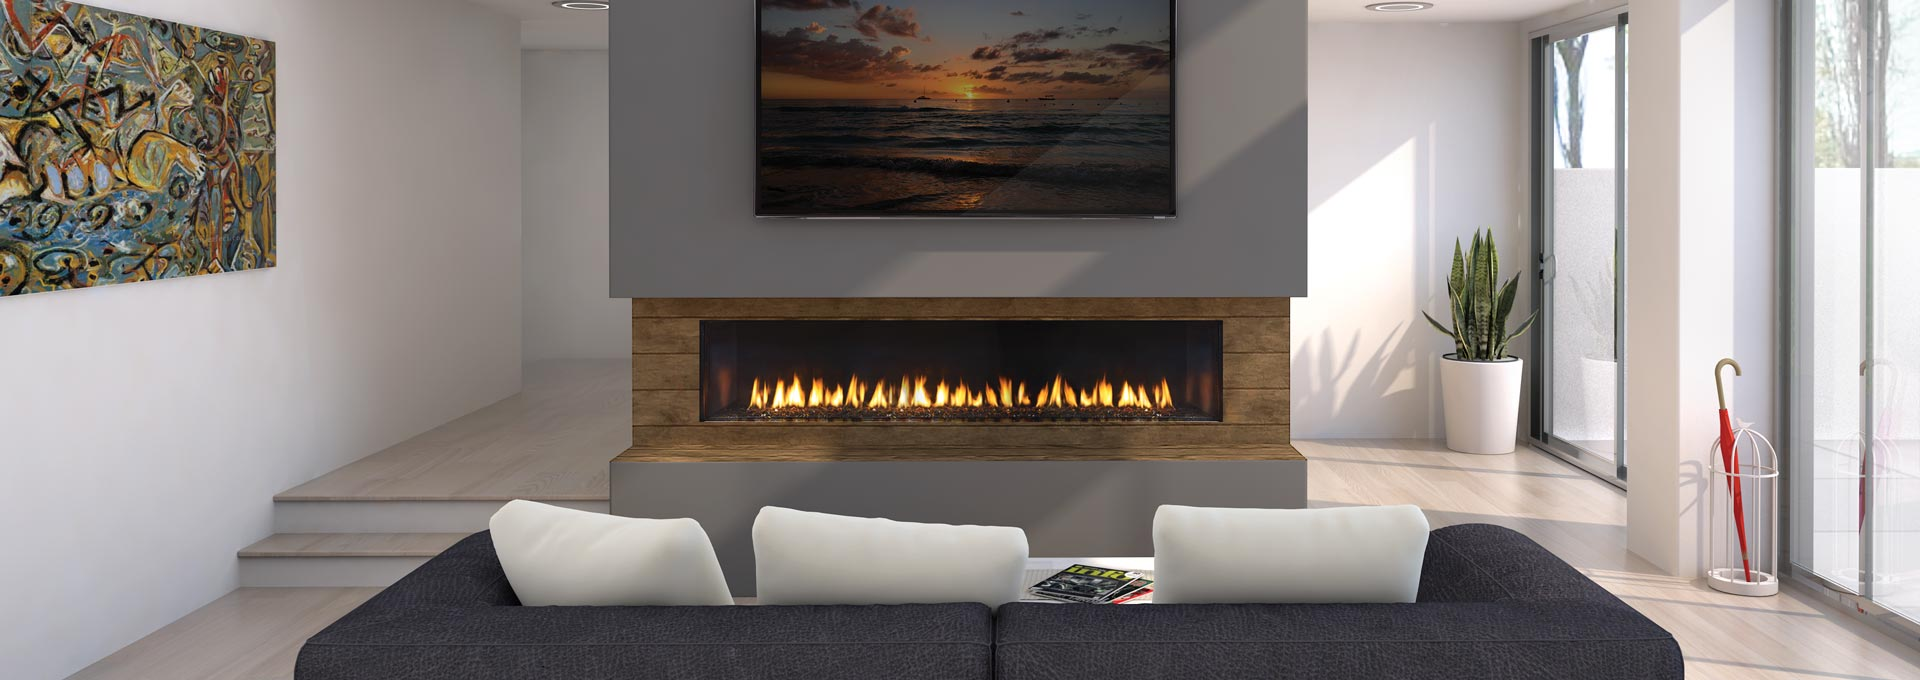 Designer Gas Fireplaces City Series By Regency